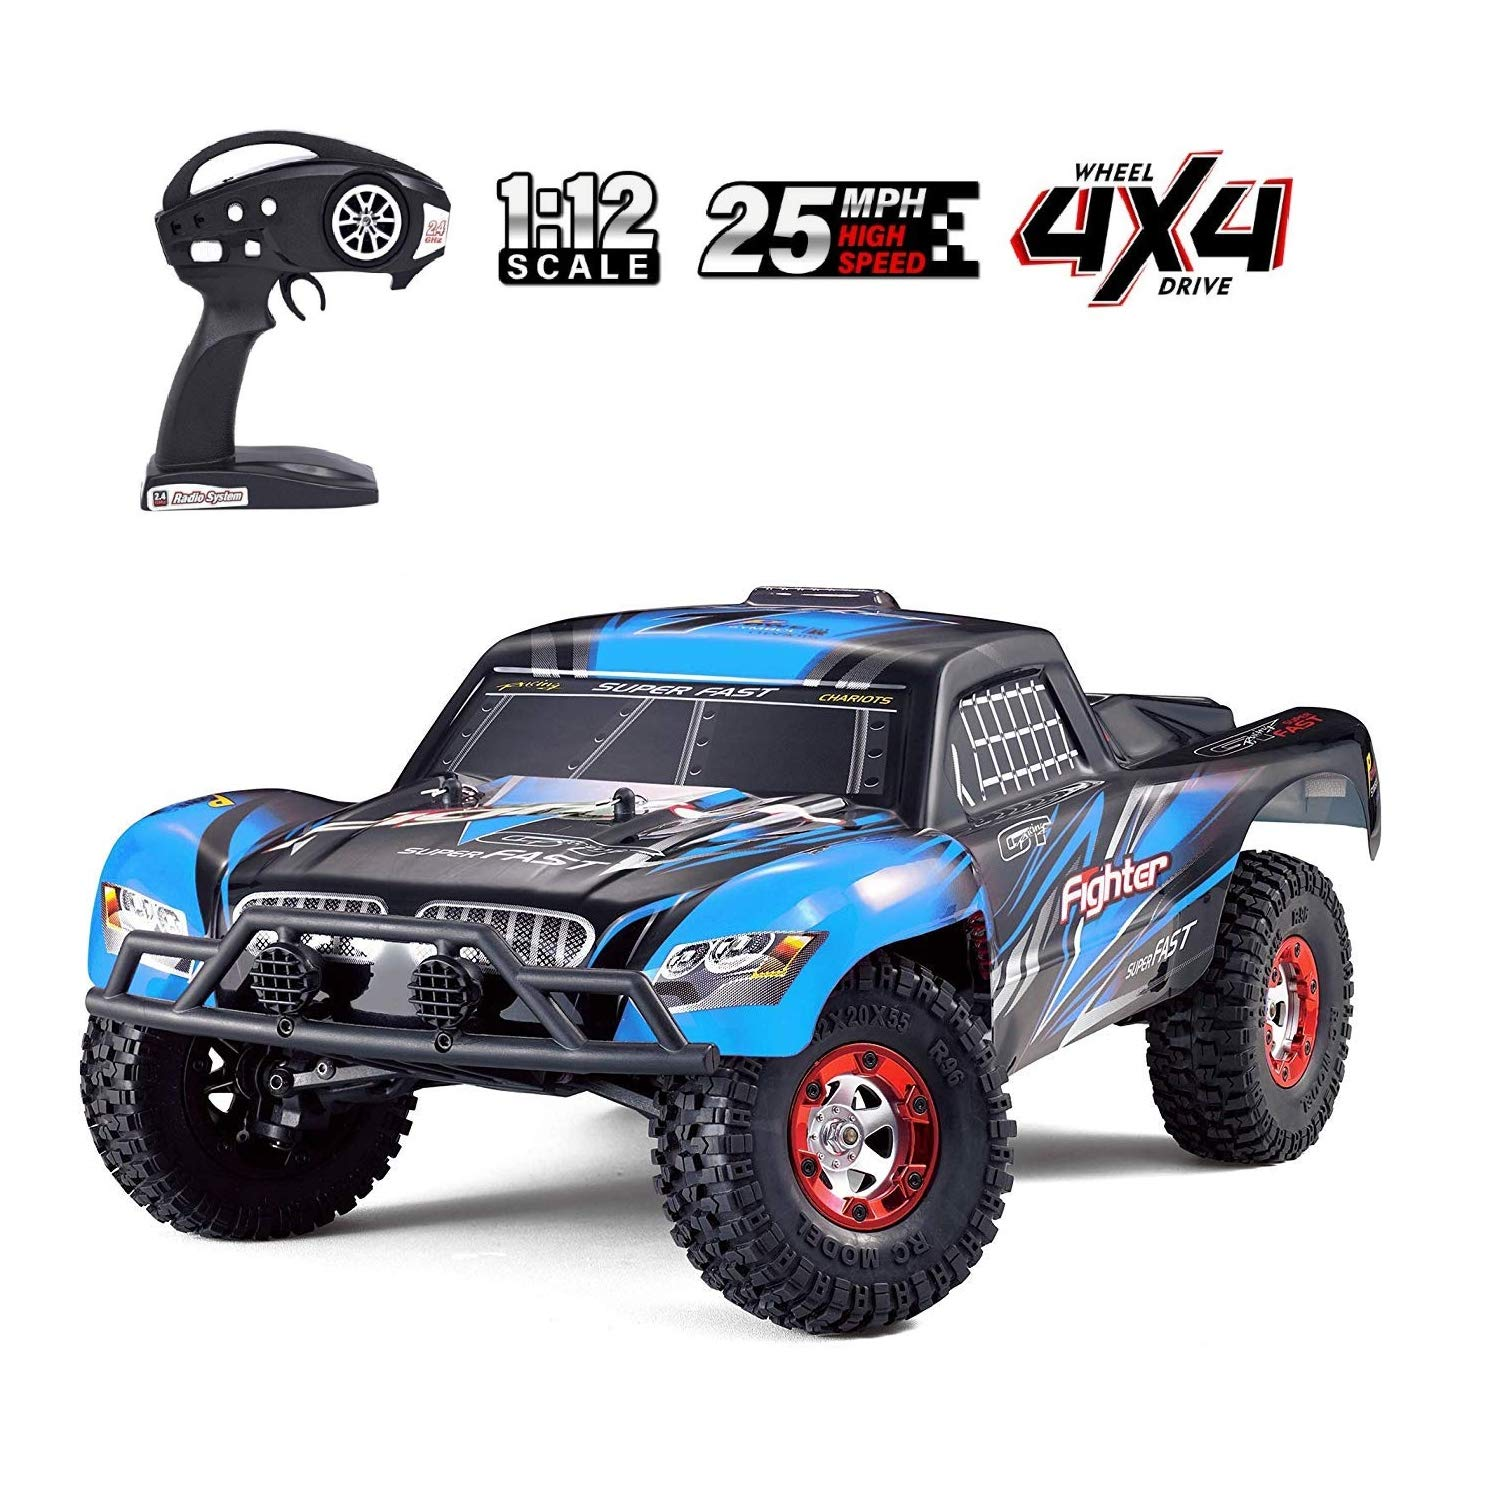 Tecesy RC Cars 1/12 Scale 2.4G 4WD High Speed Electric All Terrain Off Road Rock Crawler Climbing Buggy RTR for Kids & Adults(Blue)